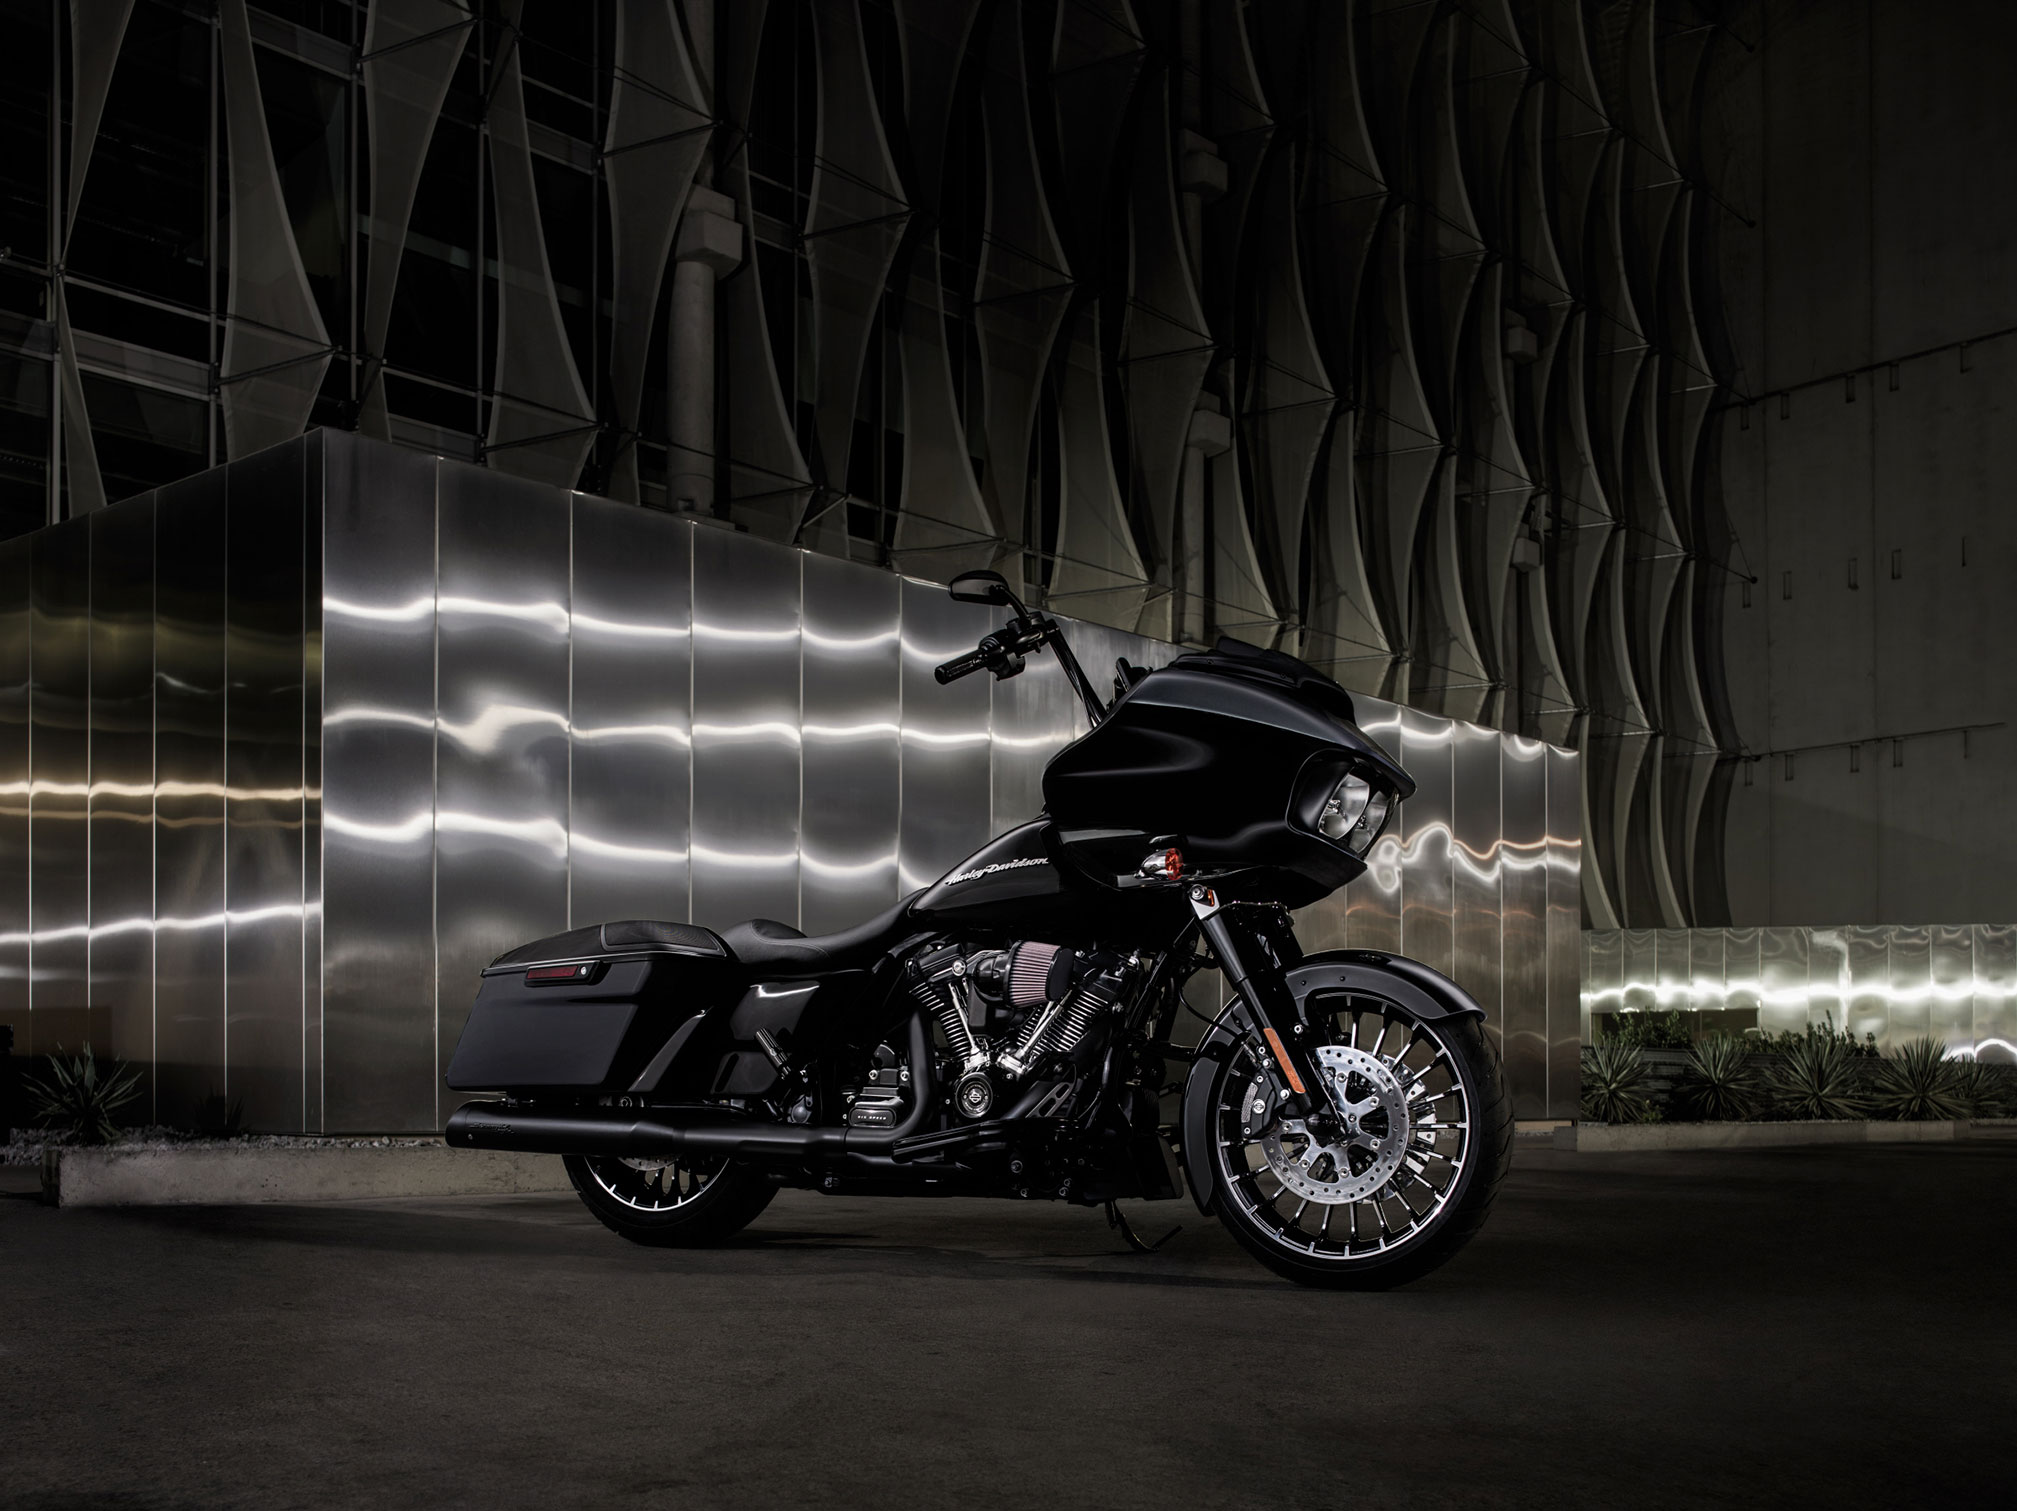 10 Harley Davidson Road Glide Hd Wallpapers Background Images